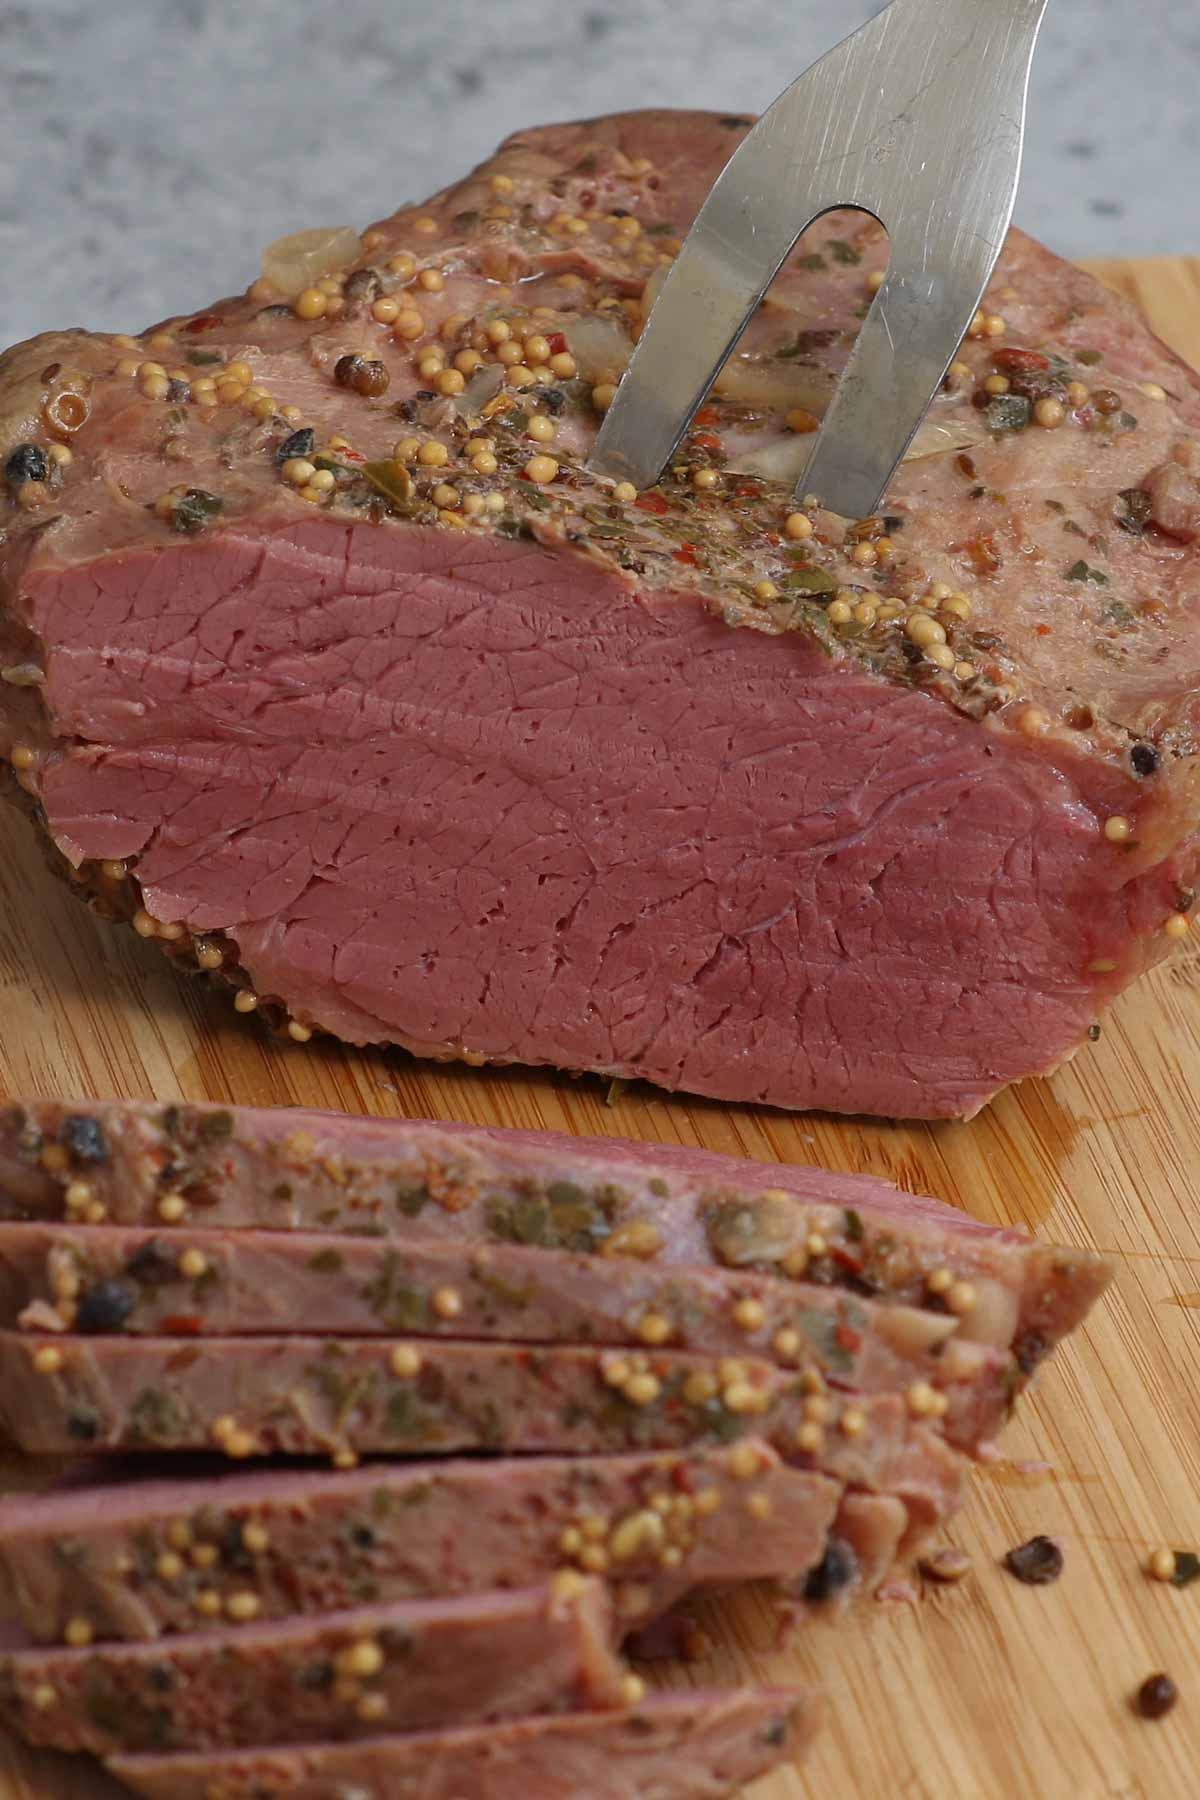 Sous Vide Corned Beef is perfectly tender and full of flavor. The salt-cured corned beef brisket is rubbed with pickling spice, and cooked low and slow in a water bath at 175°F degrees. This Irish staple is sure to be the star of your St. Patrick's Day feast! Serve it with cabbage or make a warm, cheesy Reuben sandwich.